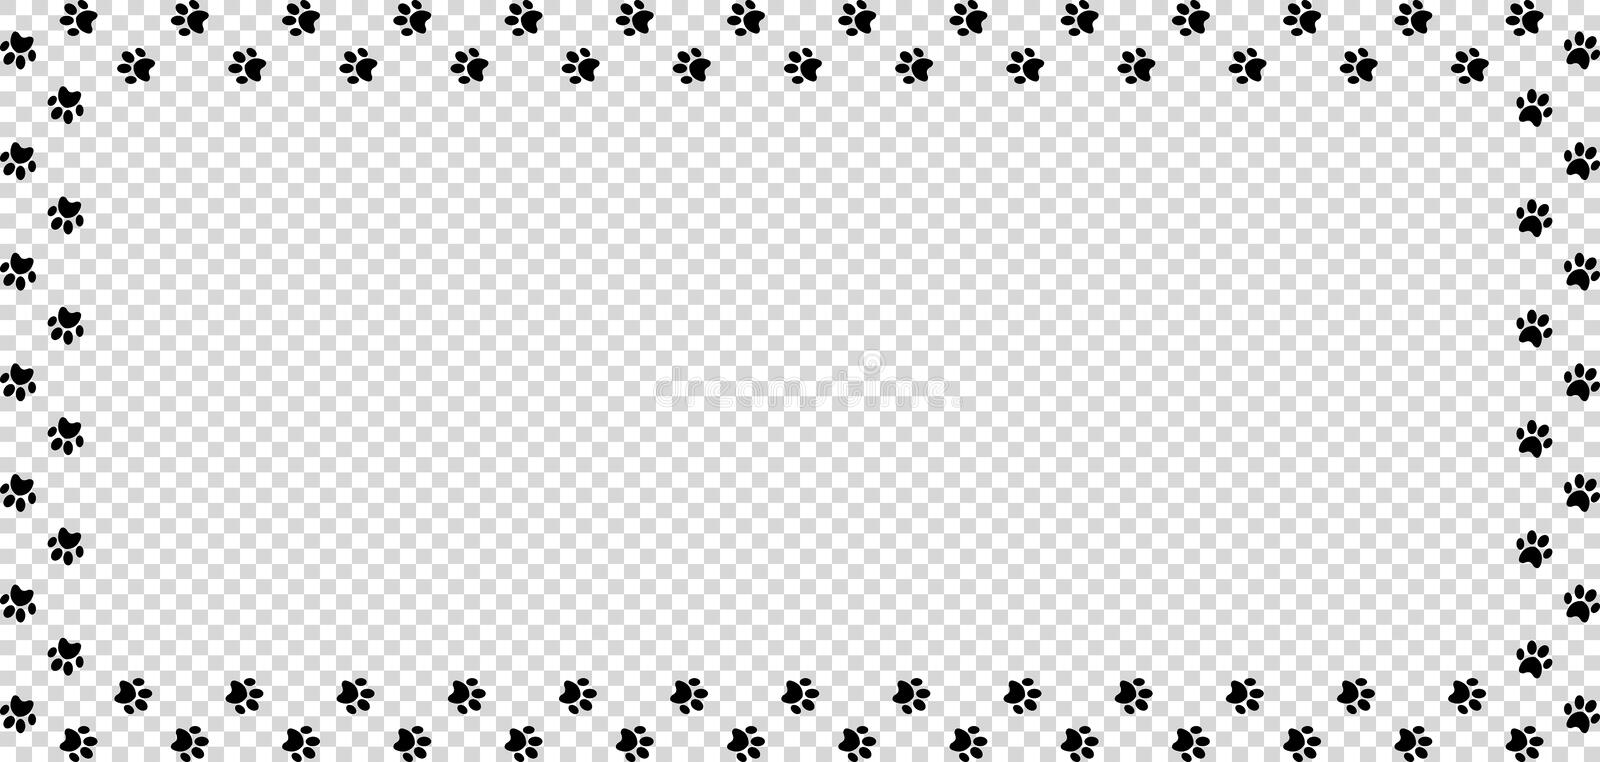 Paw Prints Border Stock Illustrations 388 Paw Prints Border Stock Illustrations Vectors Clipart Dreamstime This entry was posted in png files and tagged grunge, paw, print on january 17, 2018 by zolee. paw prints border stock illustrations